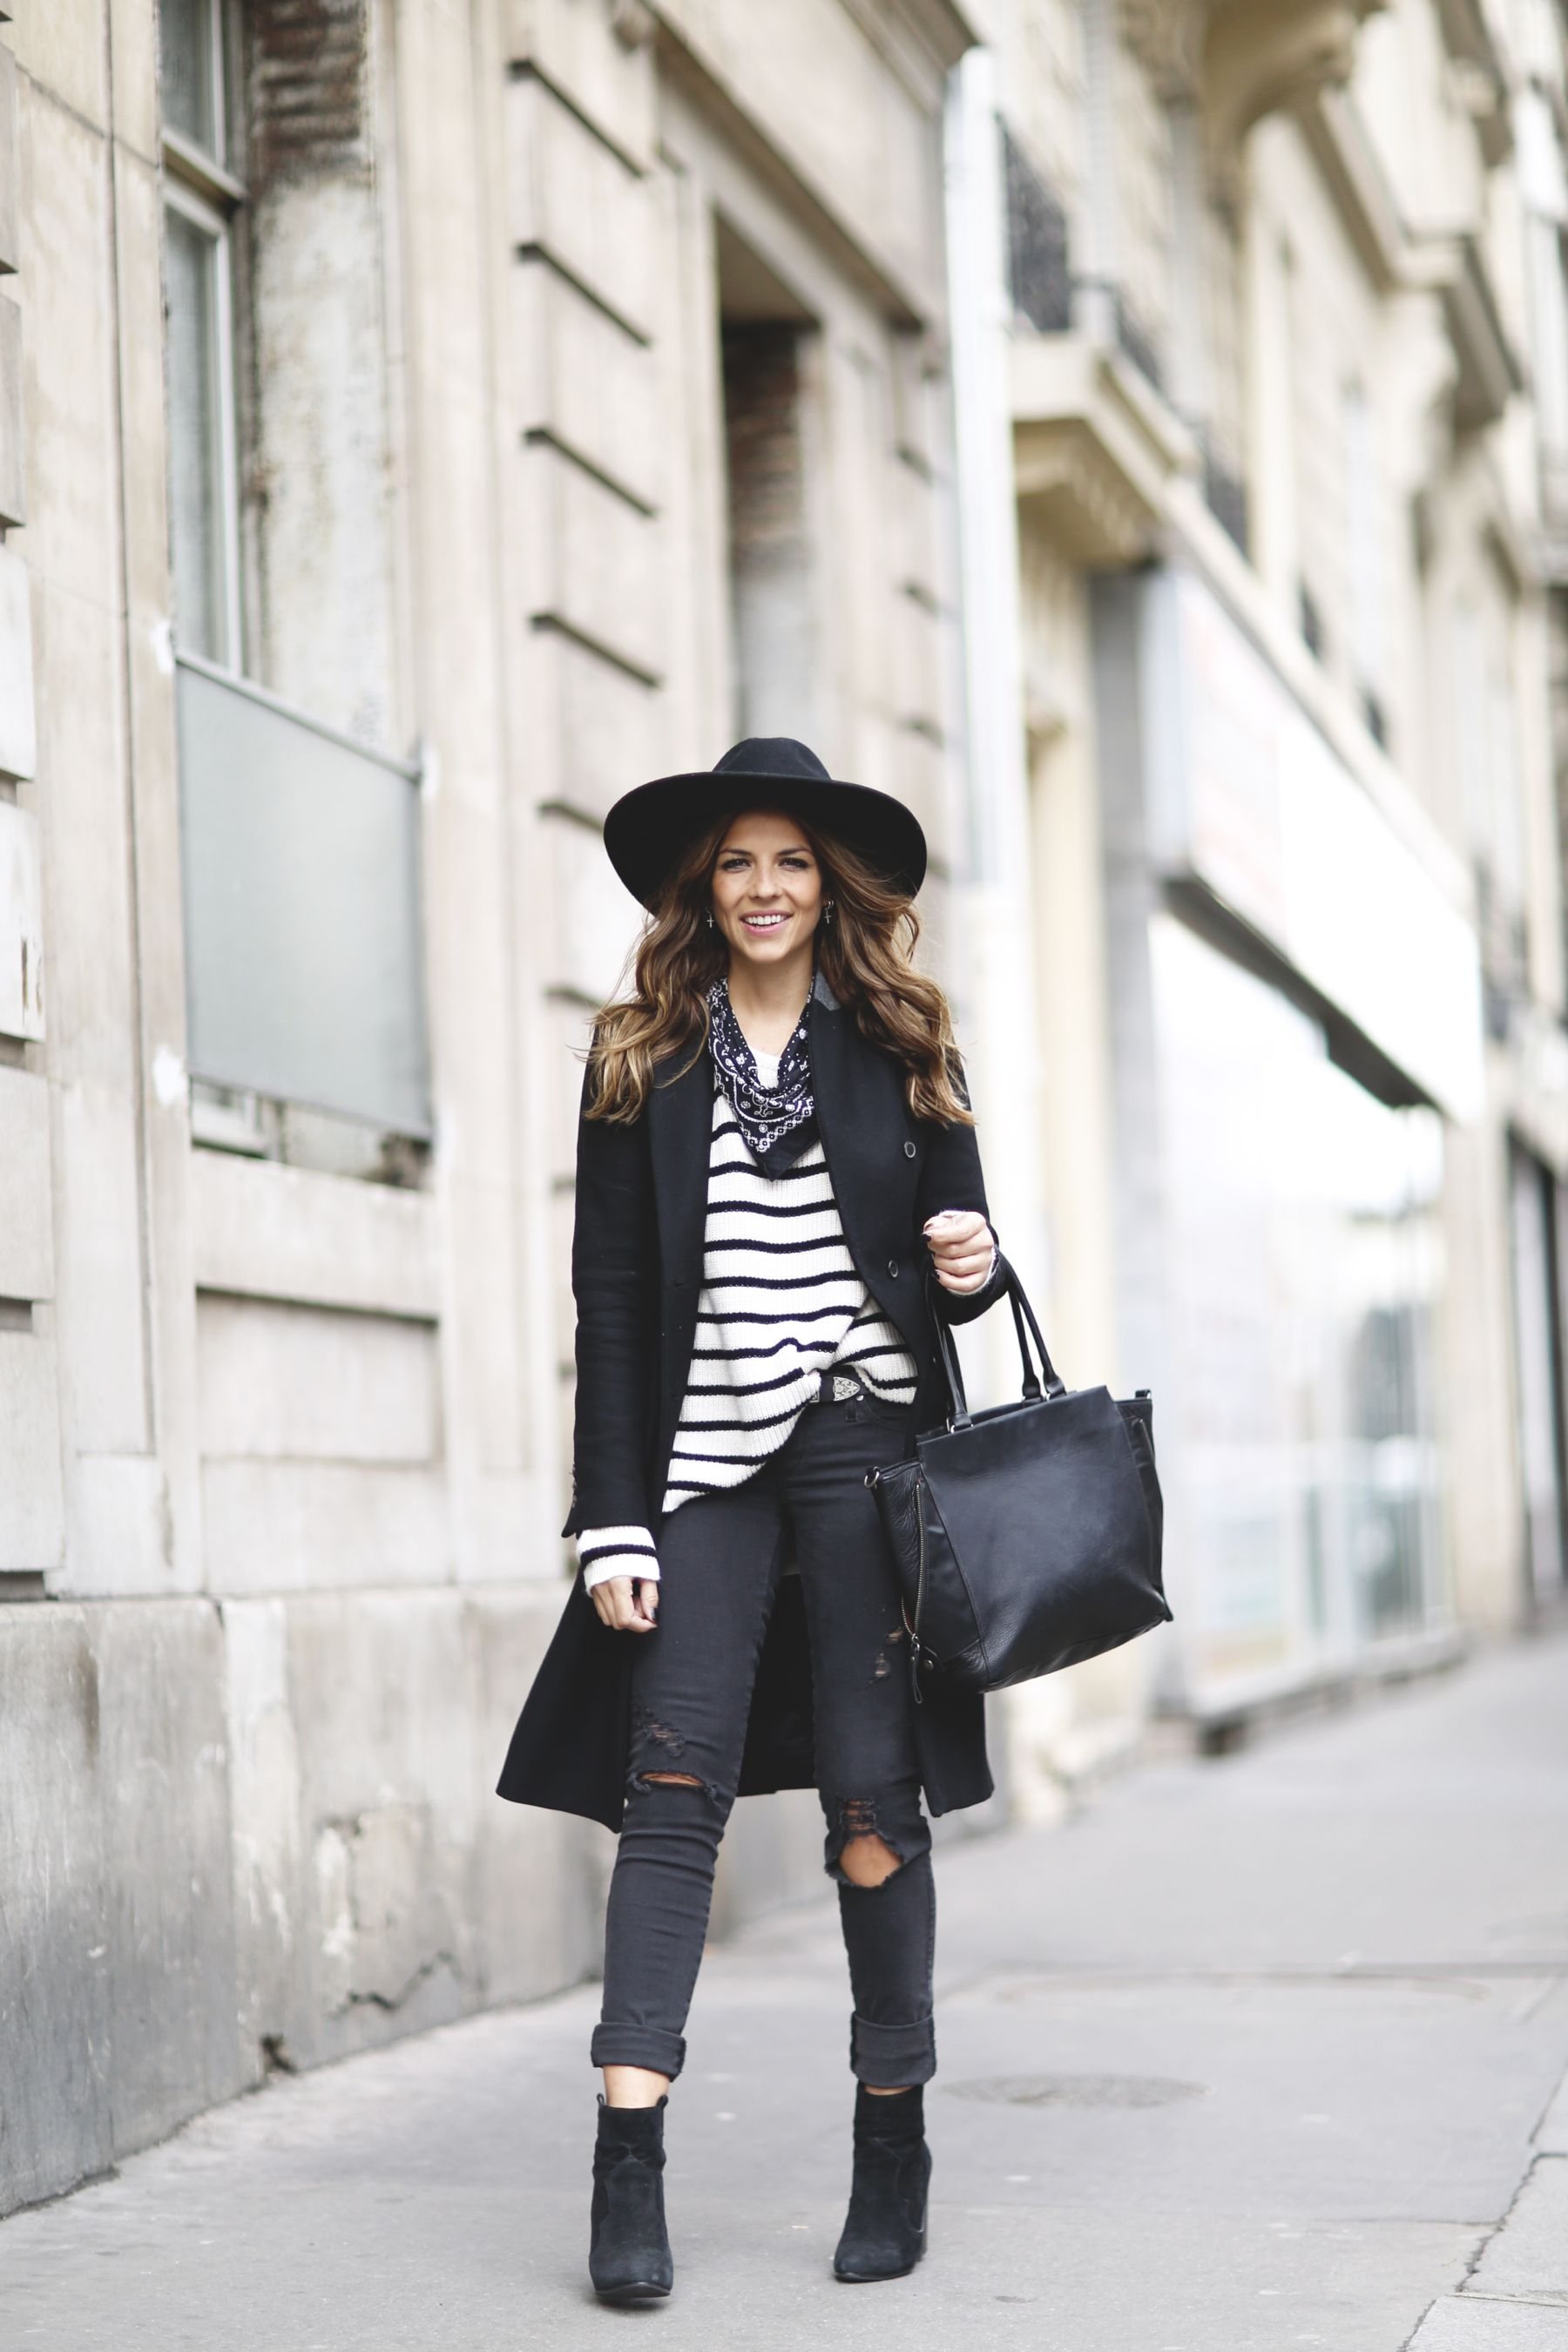 Cute Fall Outfits: How to Dress Well, Feel Great And Look Even ...